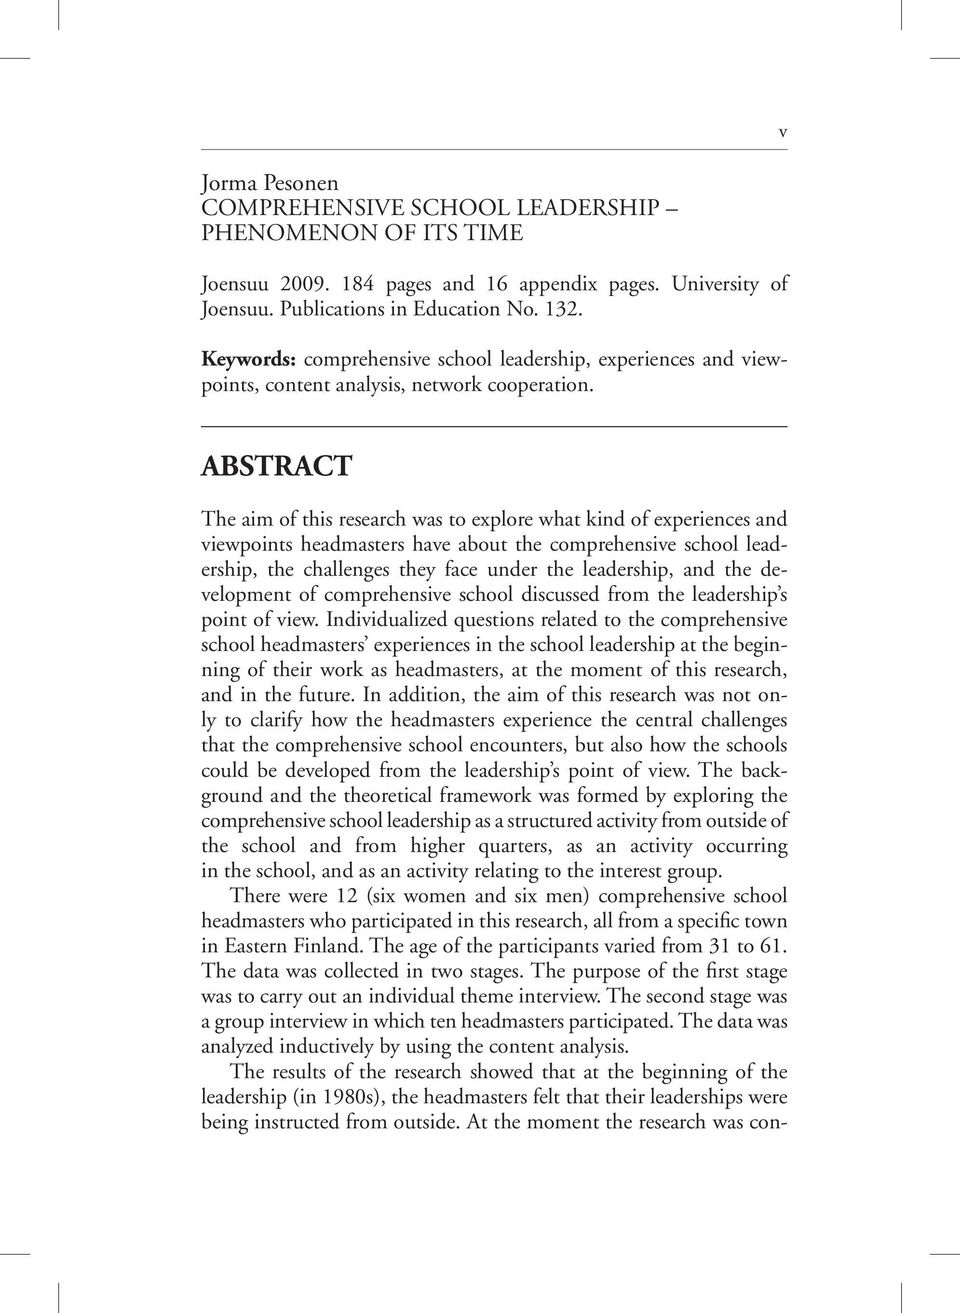 Abstract The aim of this research was to explore what kind of experiences and viewpoints headmasters have about the comprehensive school leadership, the challenges they face under the leadership, and